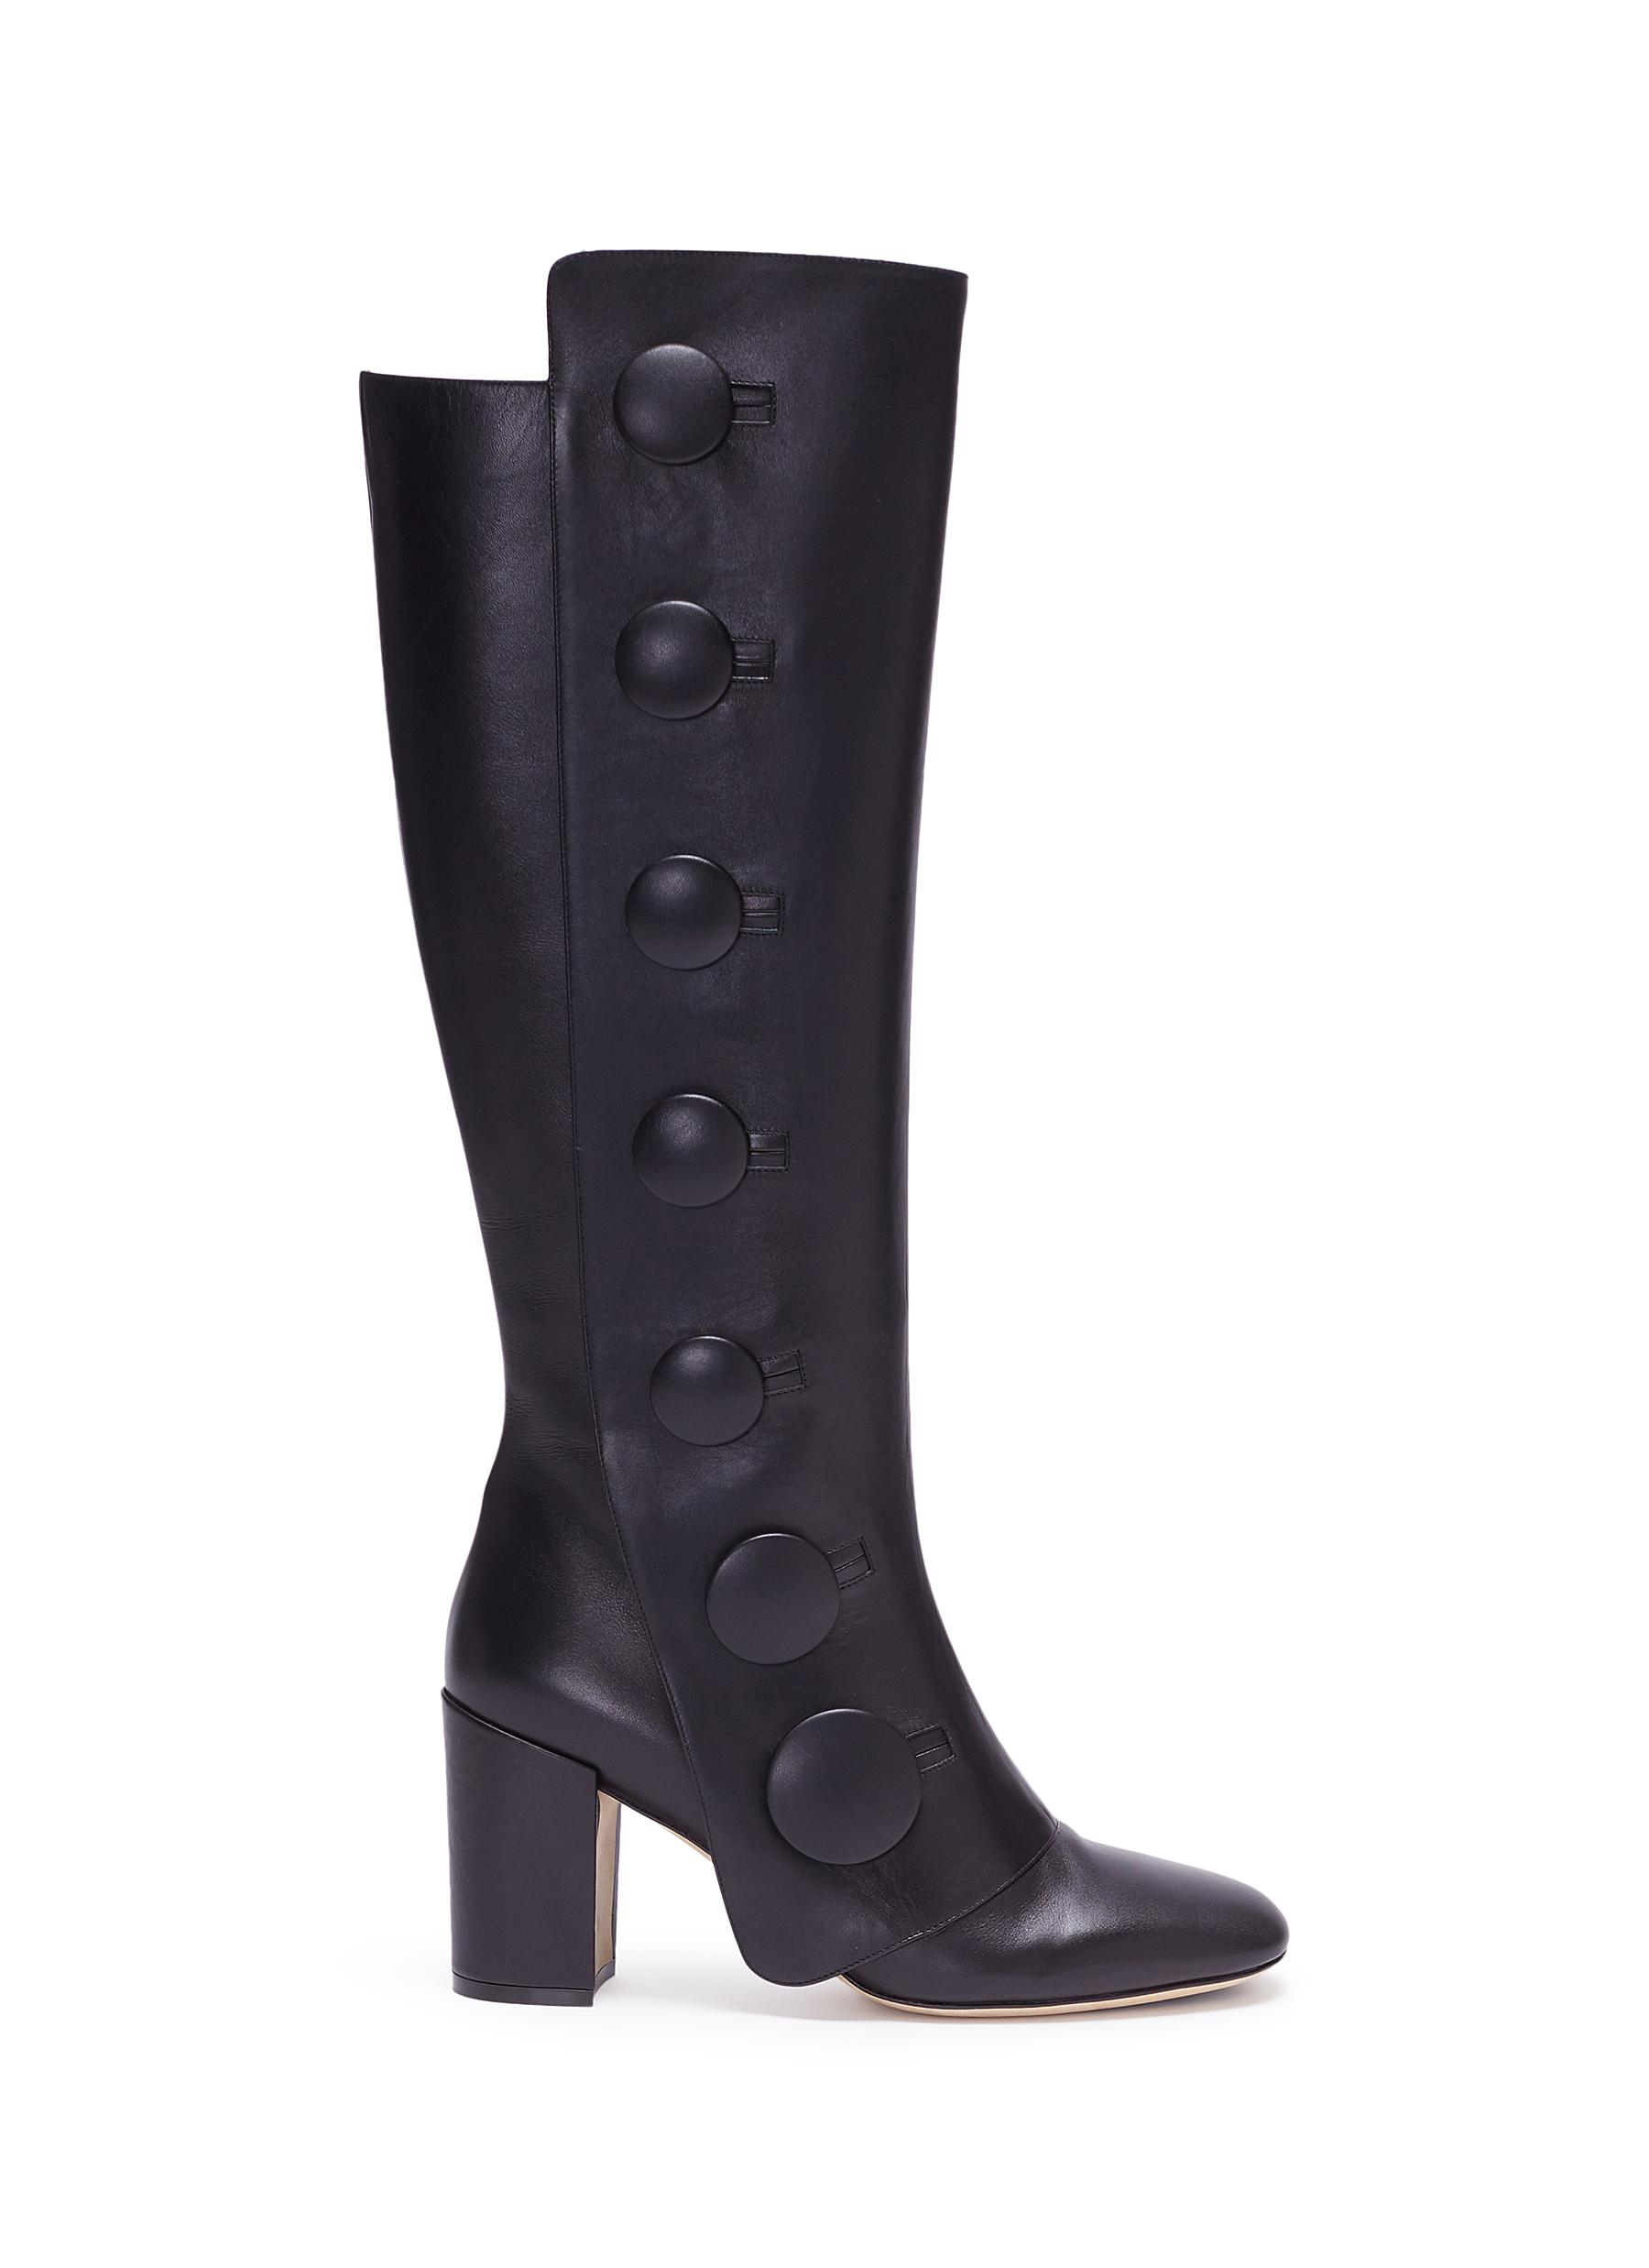 Mock button flap leather knee high boots by RODO